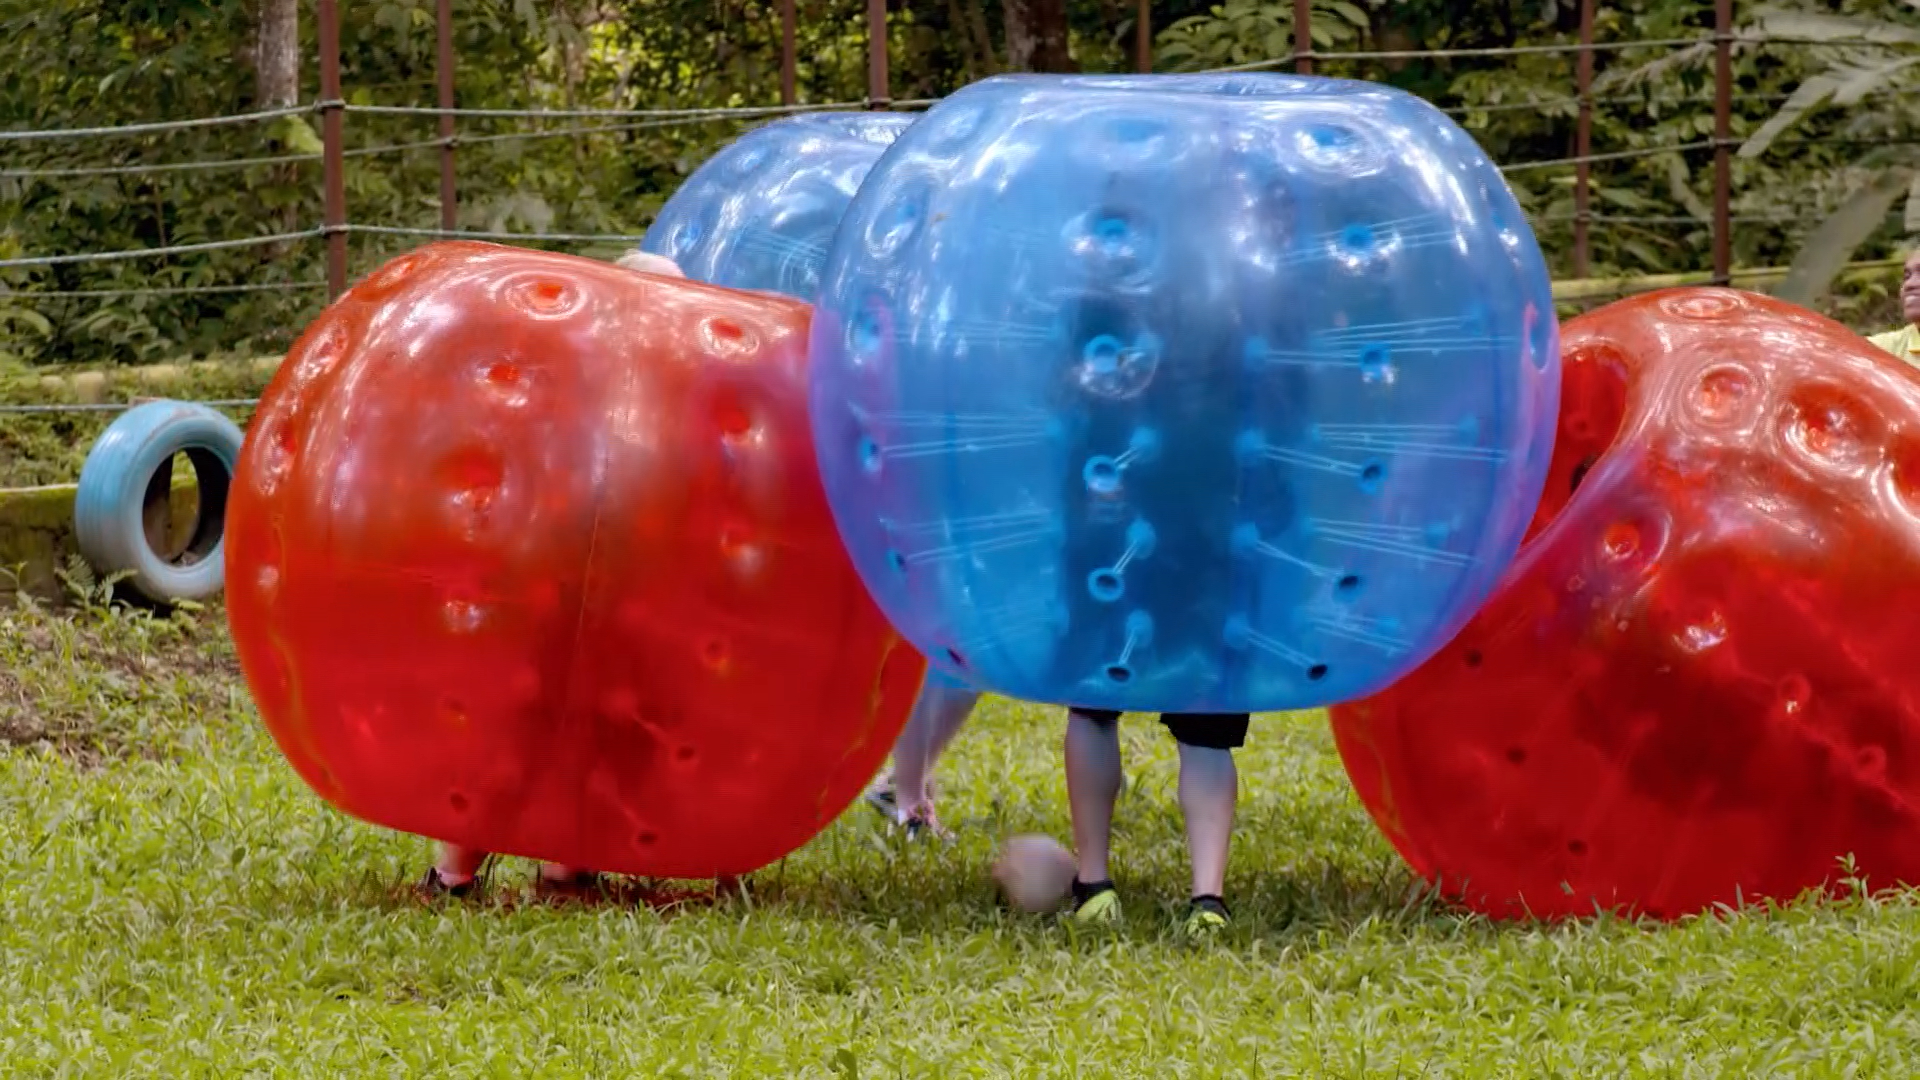 Chaos erupts when the Fren family tries bubble soccer